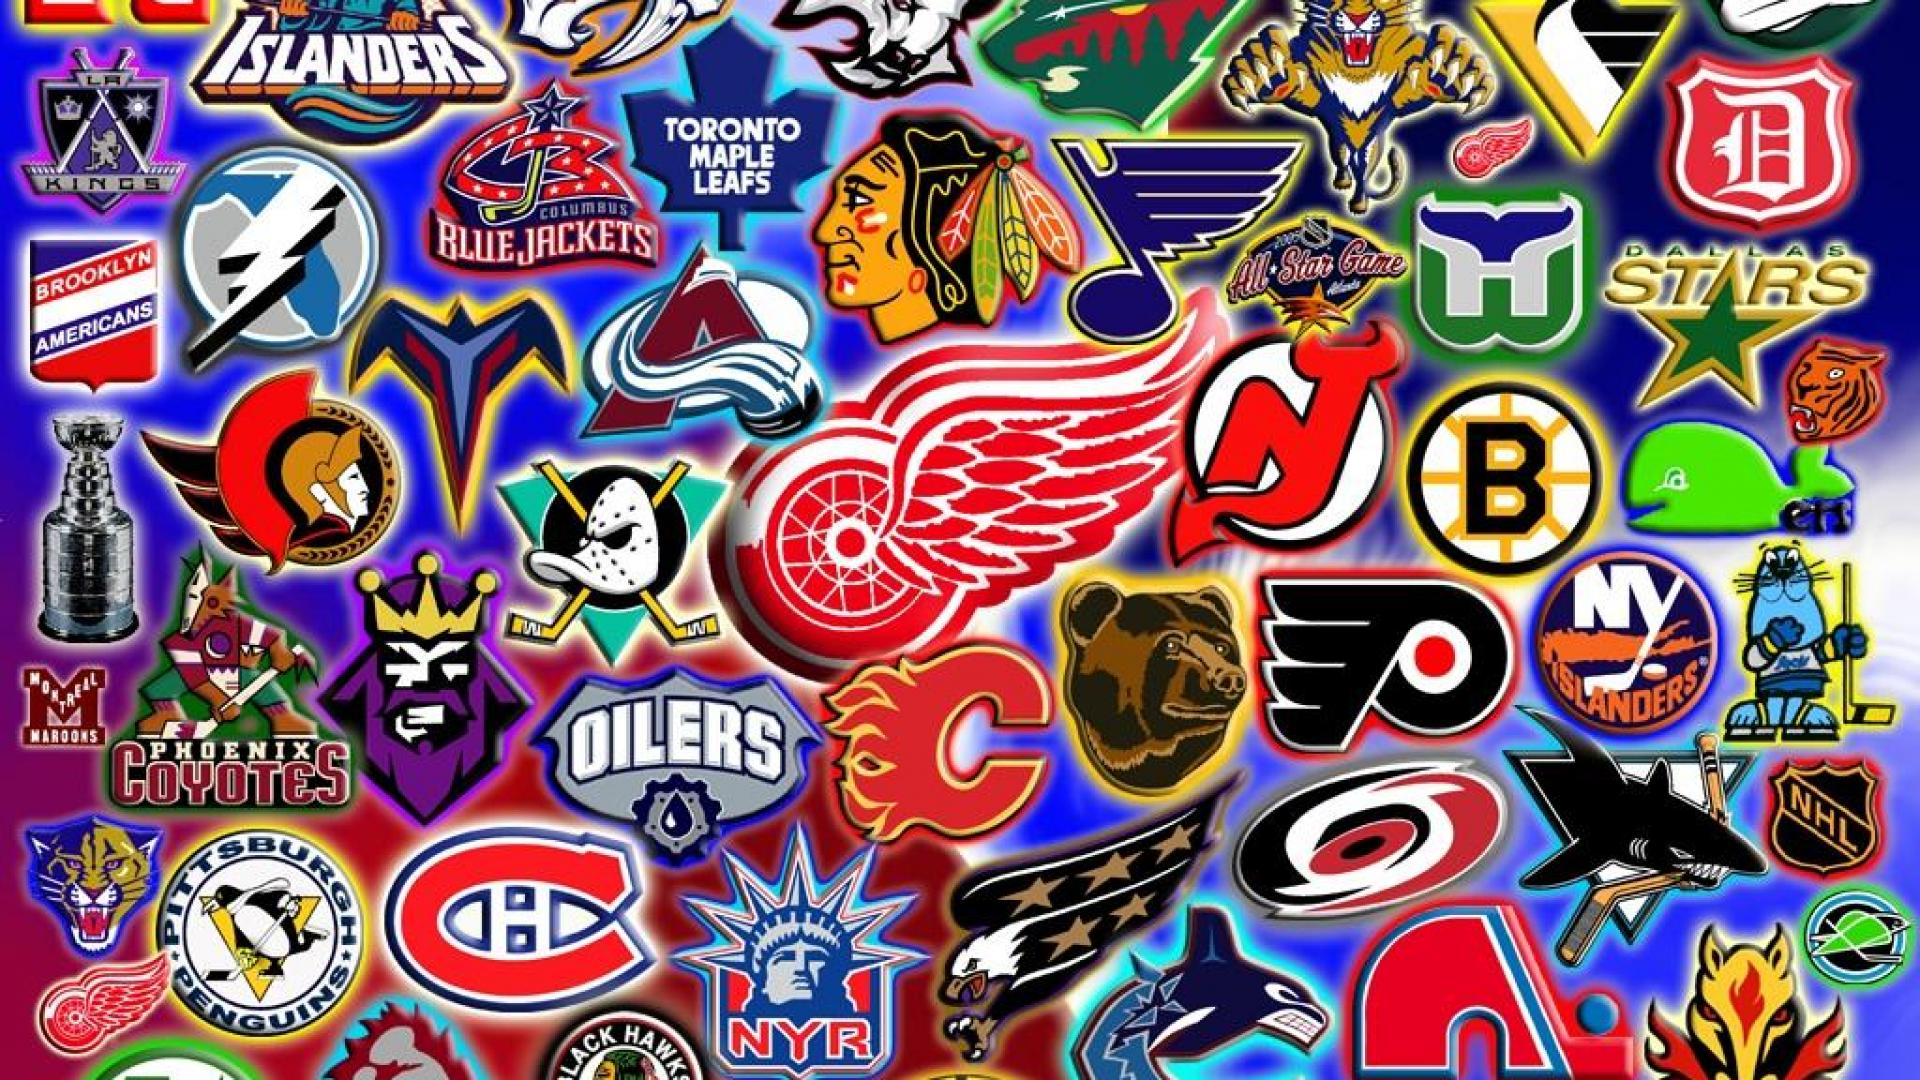 42 nhl logo wallpaper collection on wallpapersafari - Nhl hockey wallpapers ...